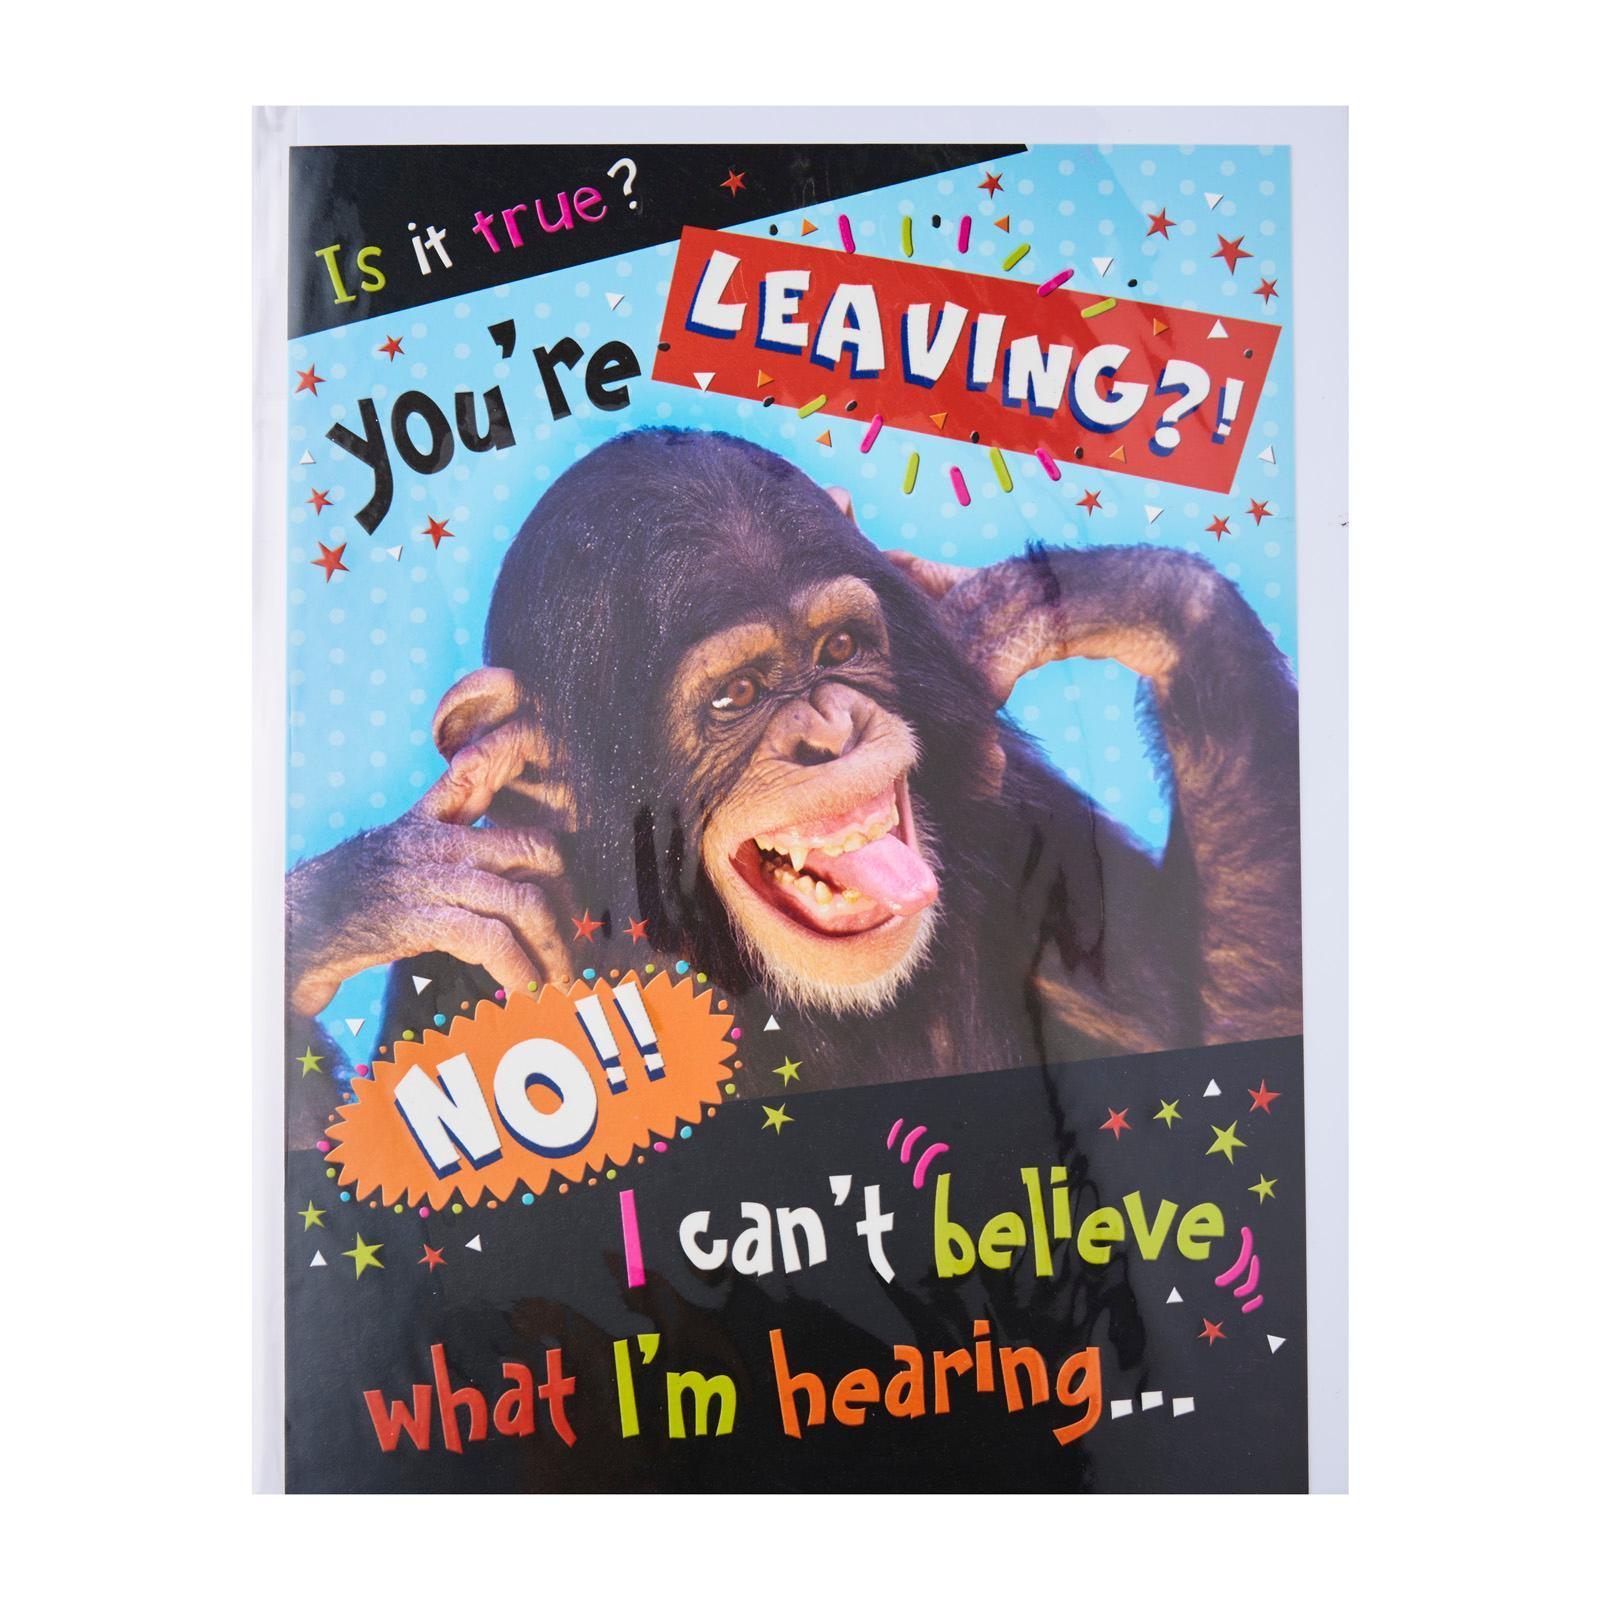 Pink Chilli Designs Farewell Card - Is It True? You're Leaving?! No!! I' Can't Believe What I'M Hearing...